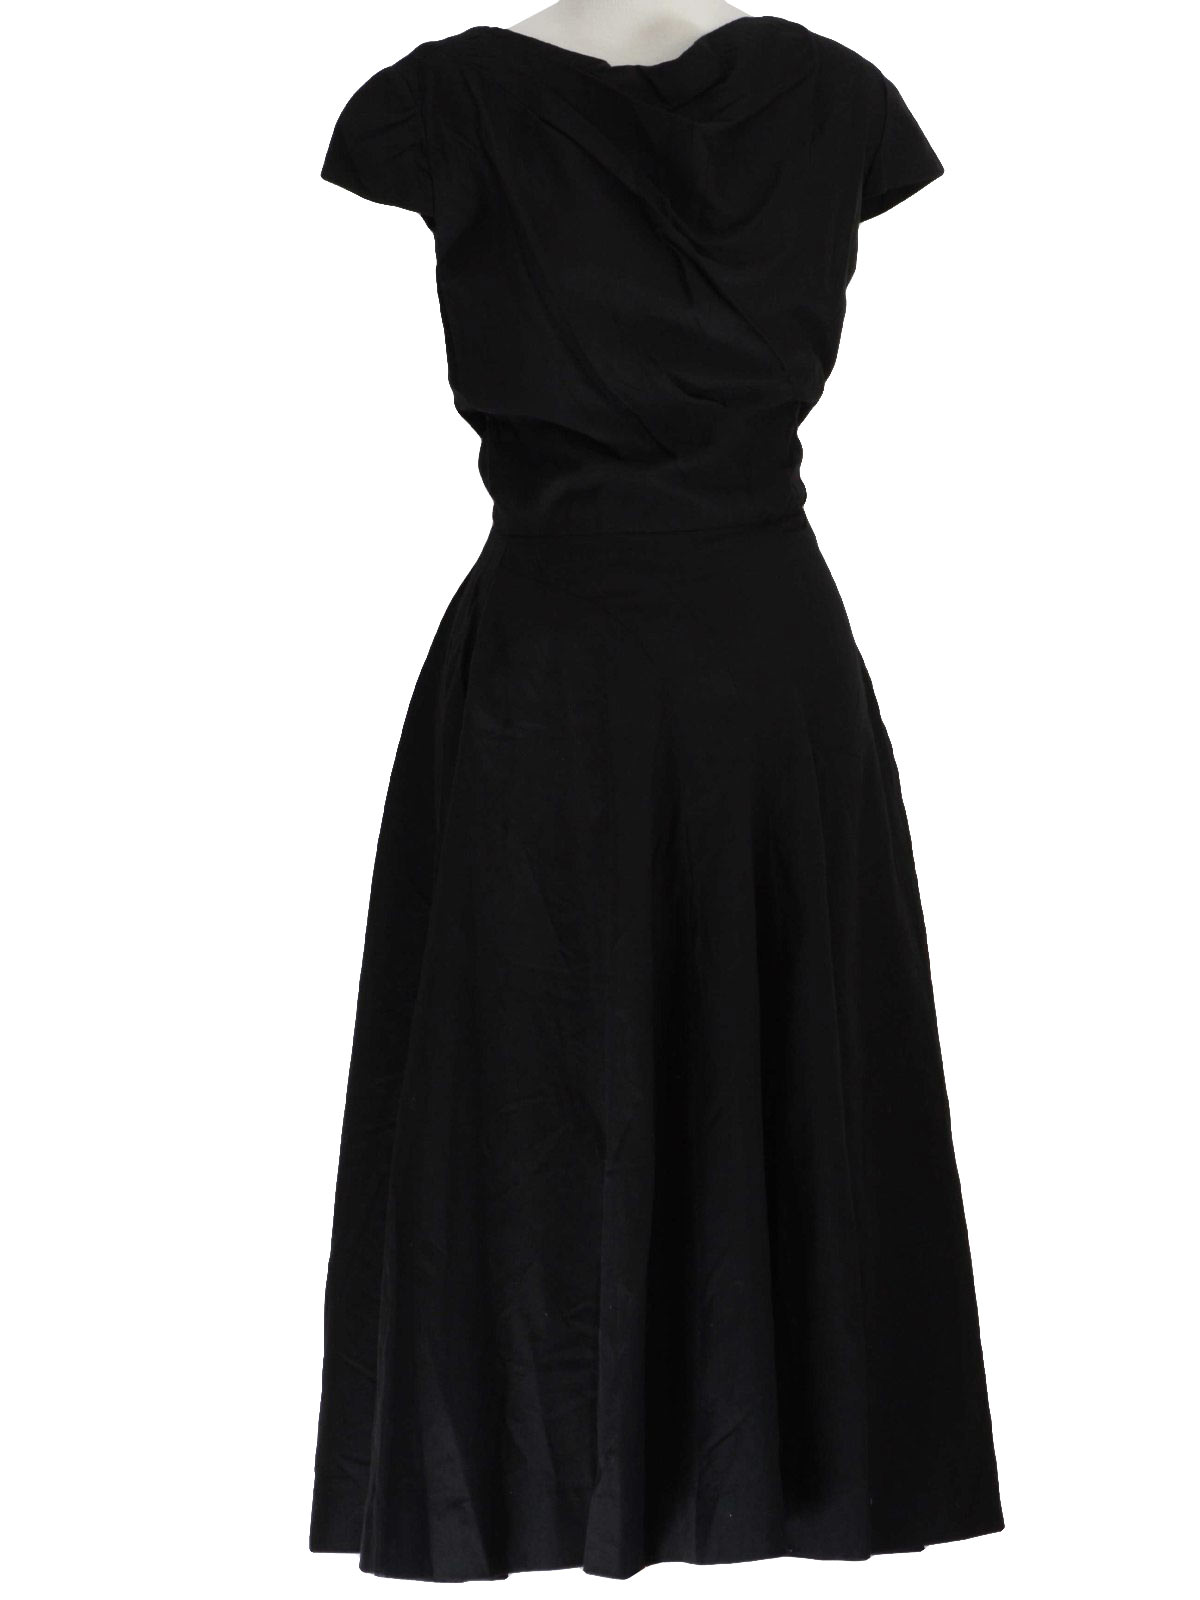 Modest Little Black Dresses